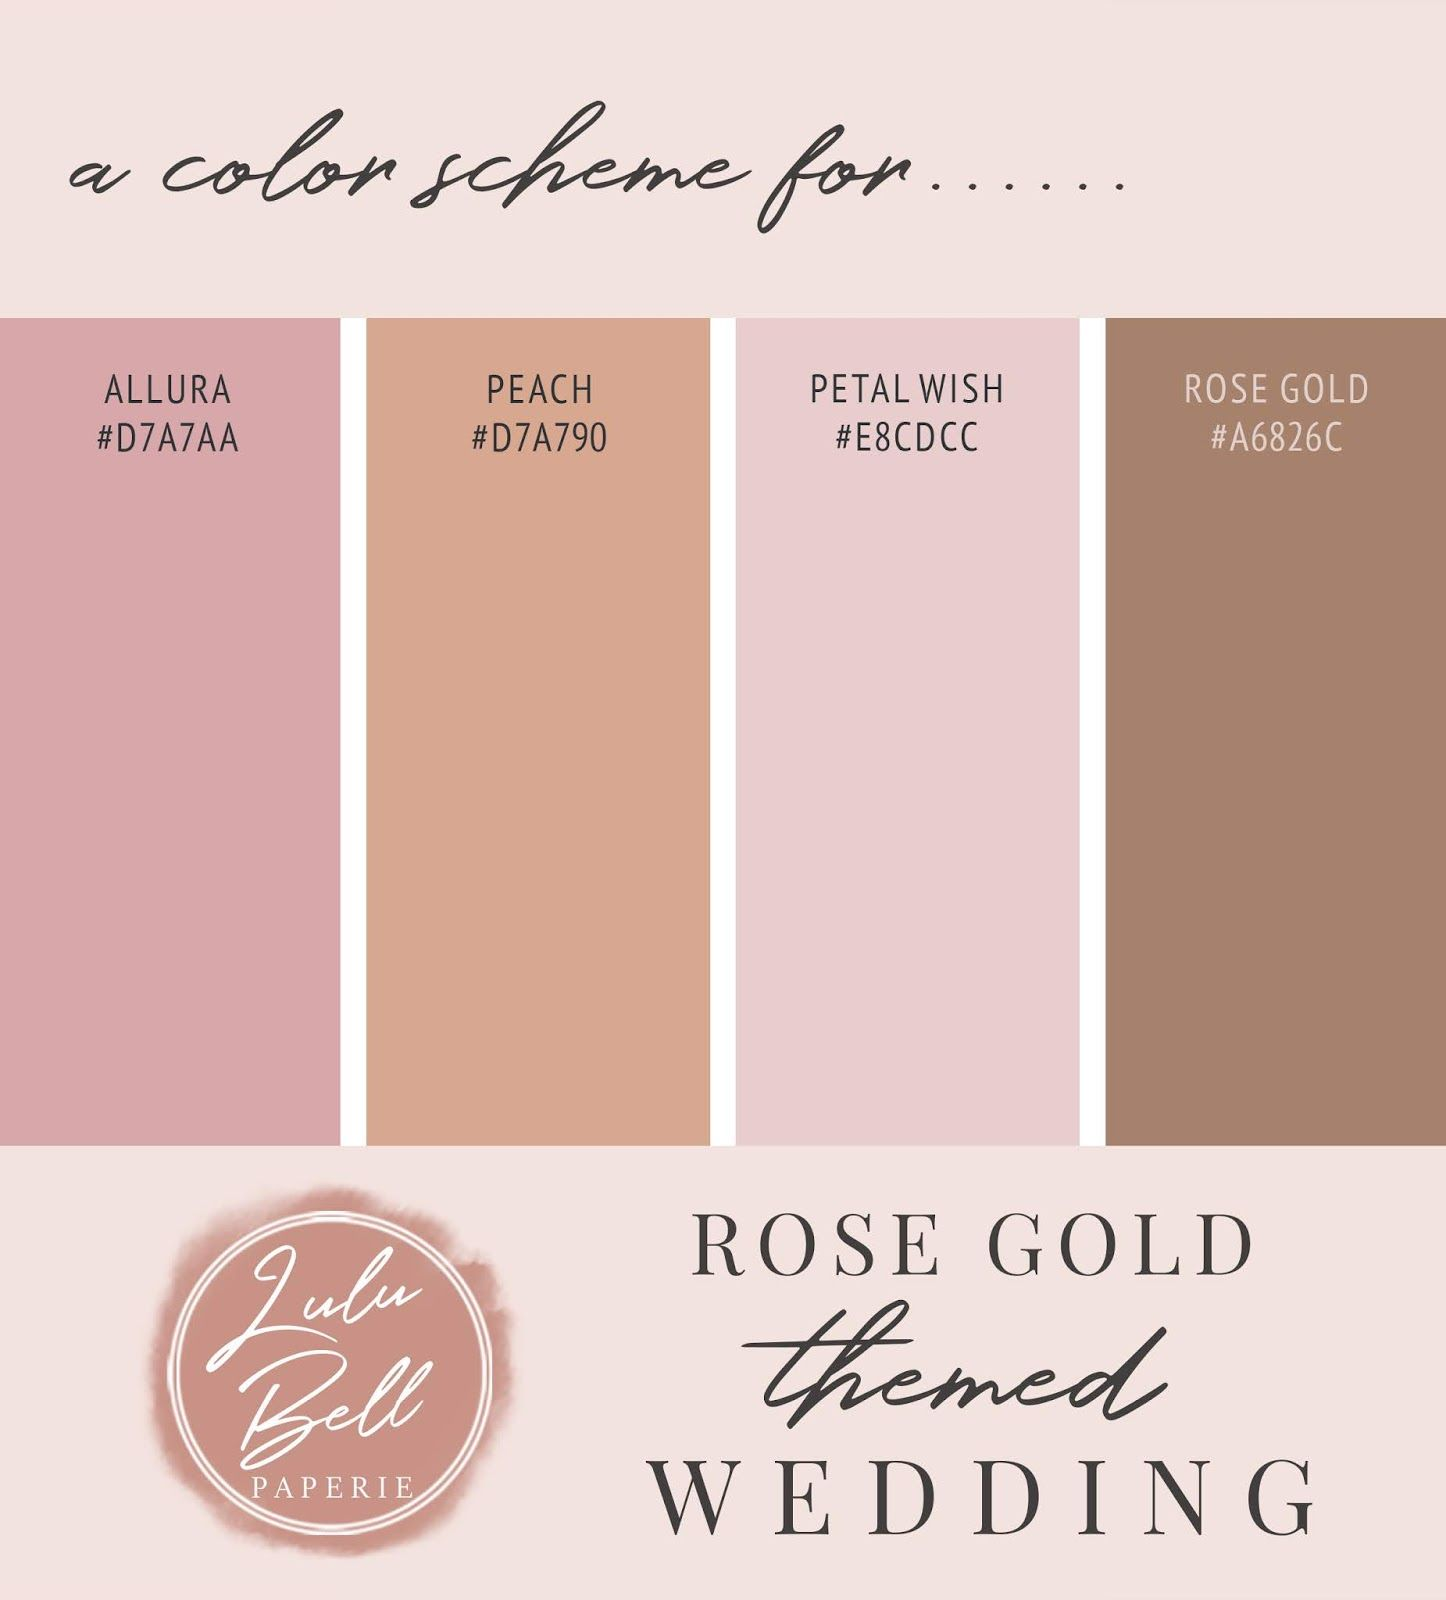 Pin On Rose Gold Themed Wedding Invitations Reception Decor Style Ideas Bridesmaid Dresses Jewelry And Color Palettes